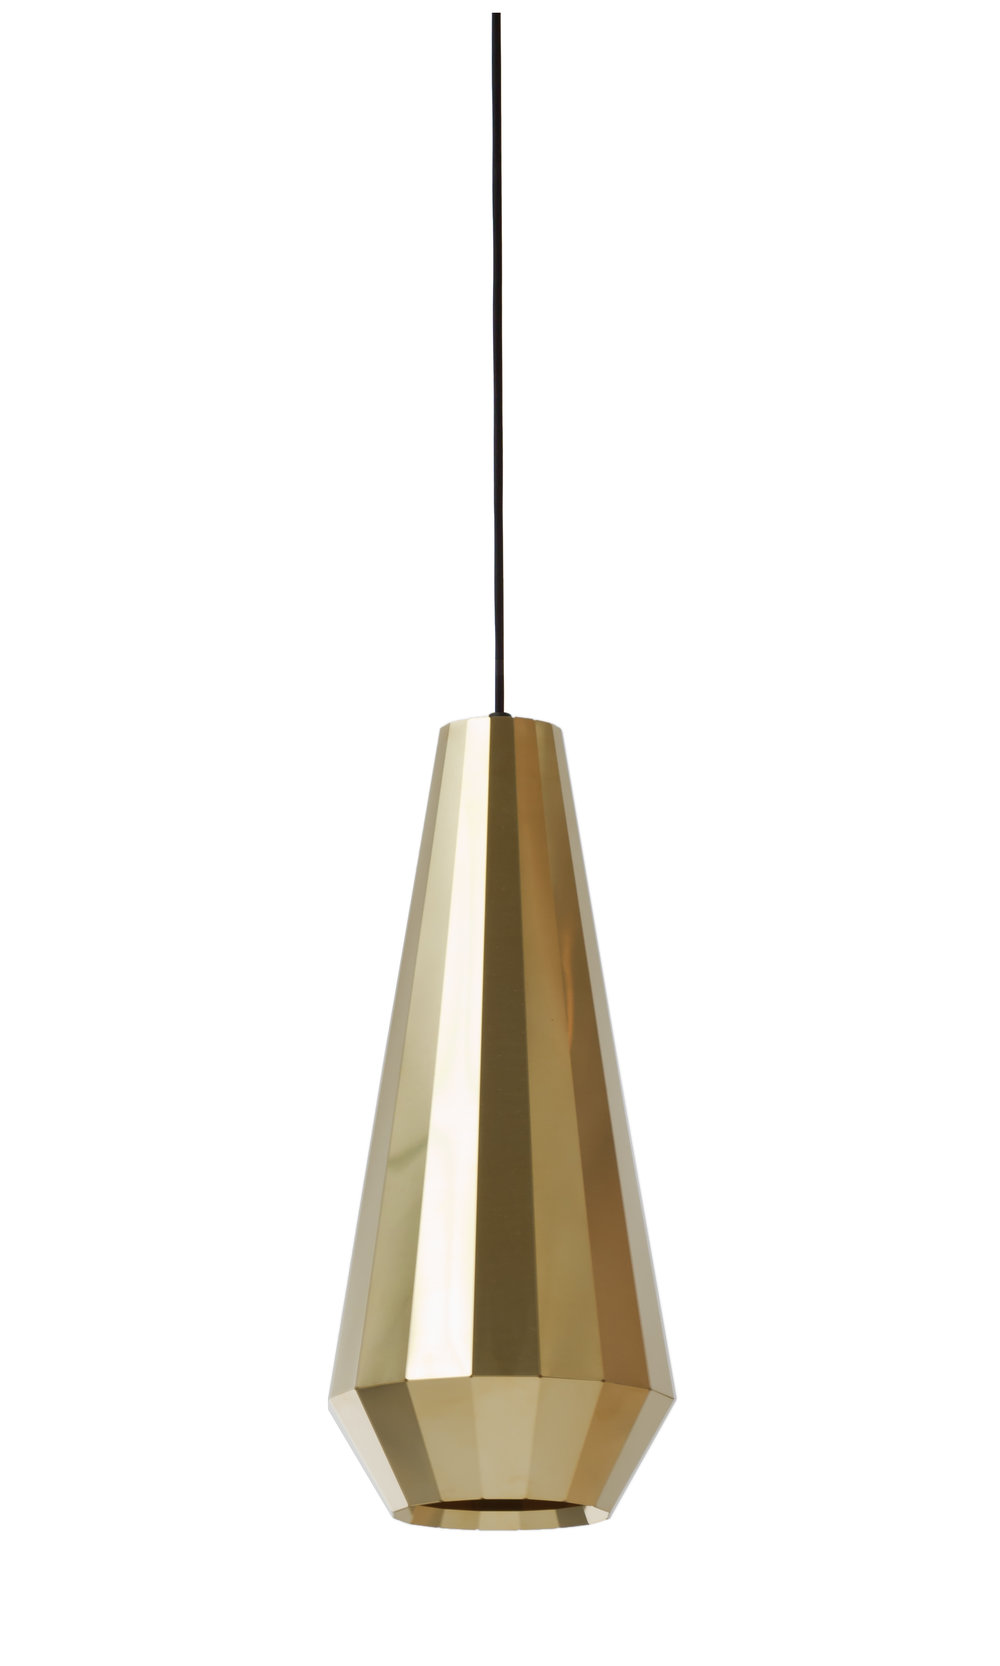 Vij5-Brass-Light-BL16-03-2014-image-by-Vij5.jpeg